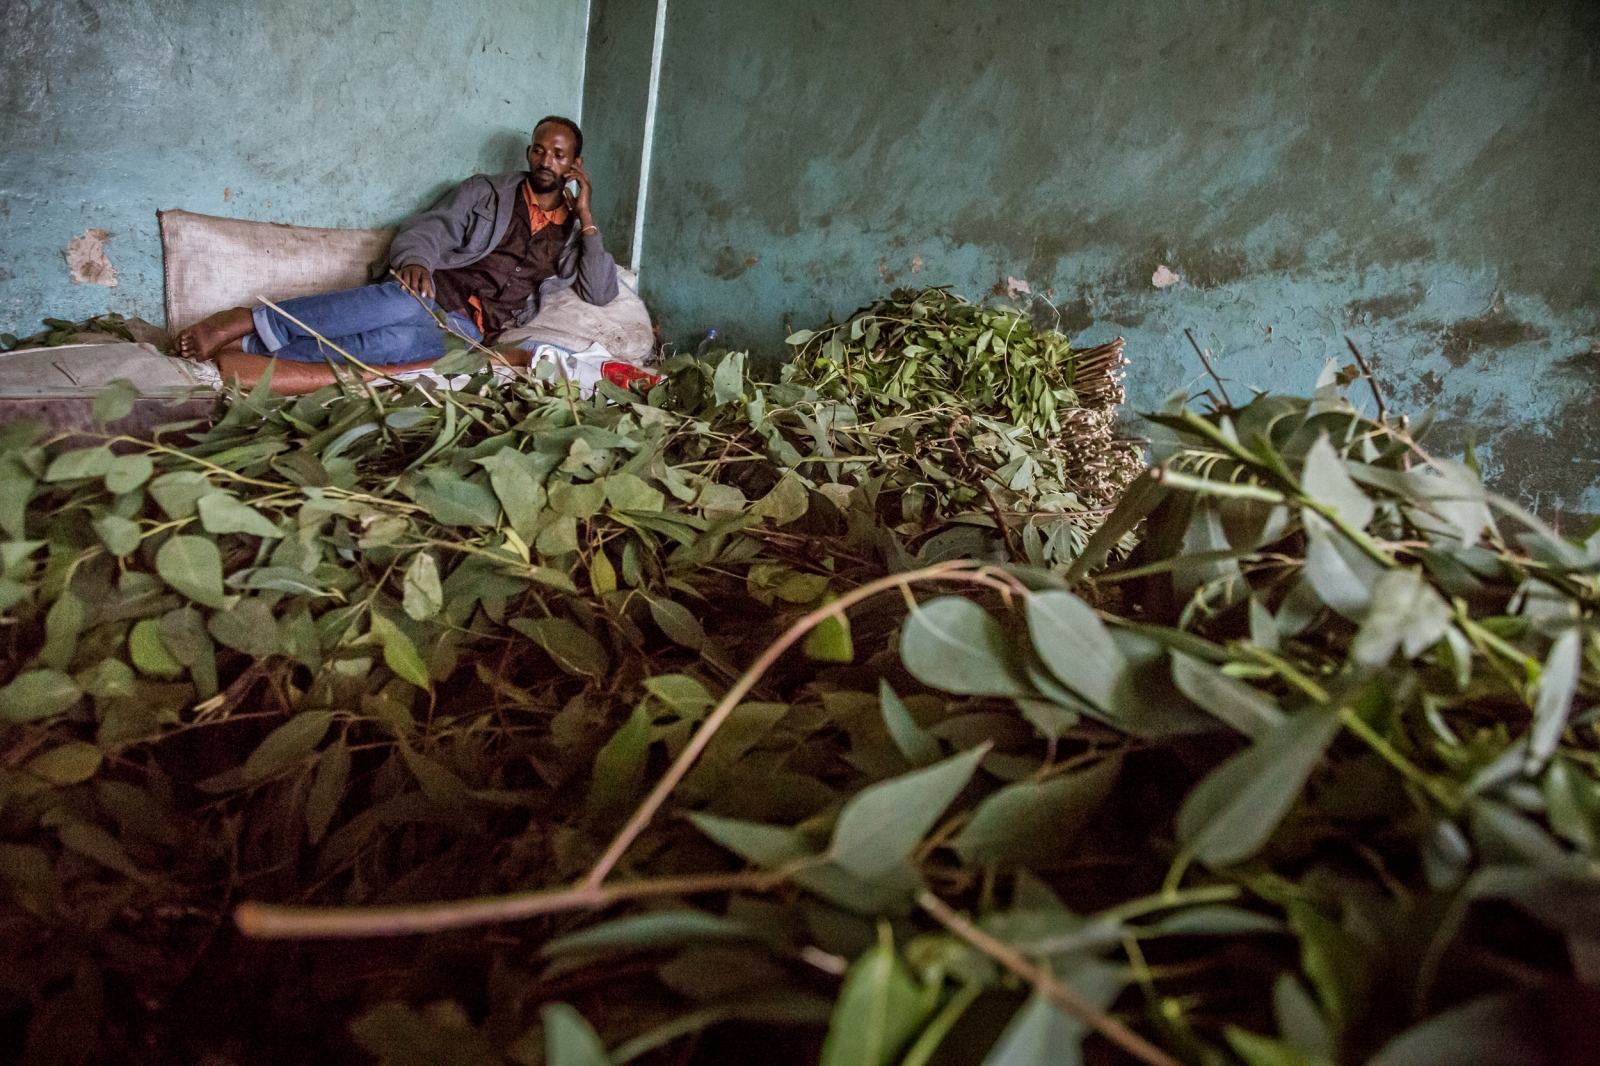 In warehouses, the khat leaves are sorted by their quality for export, mainly to Djibouti and Somaliland but also to parts of Europe. Export quality khat is packed and sent everyday to countries that do not ban the plant.